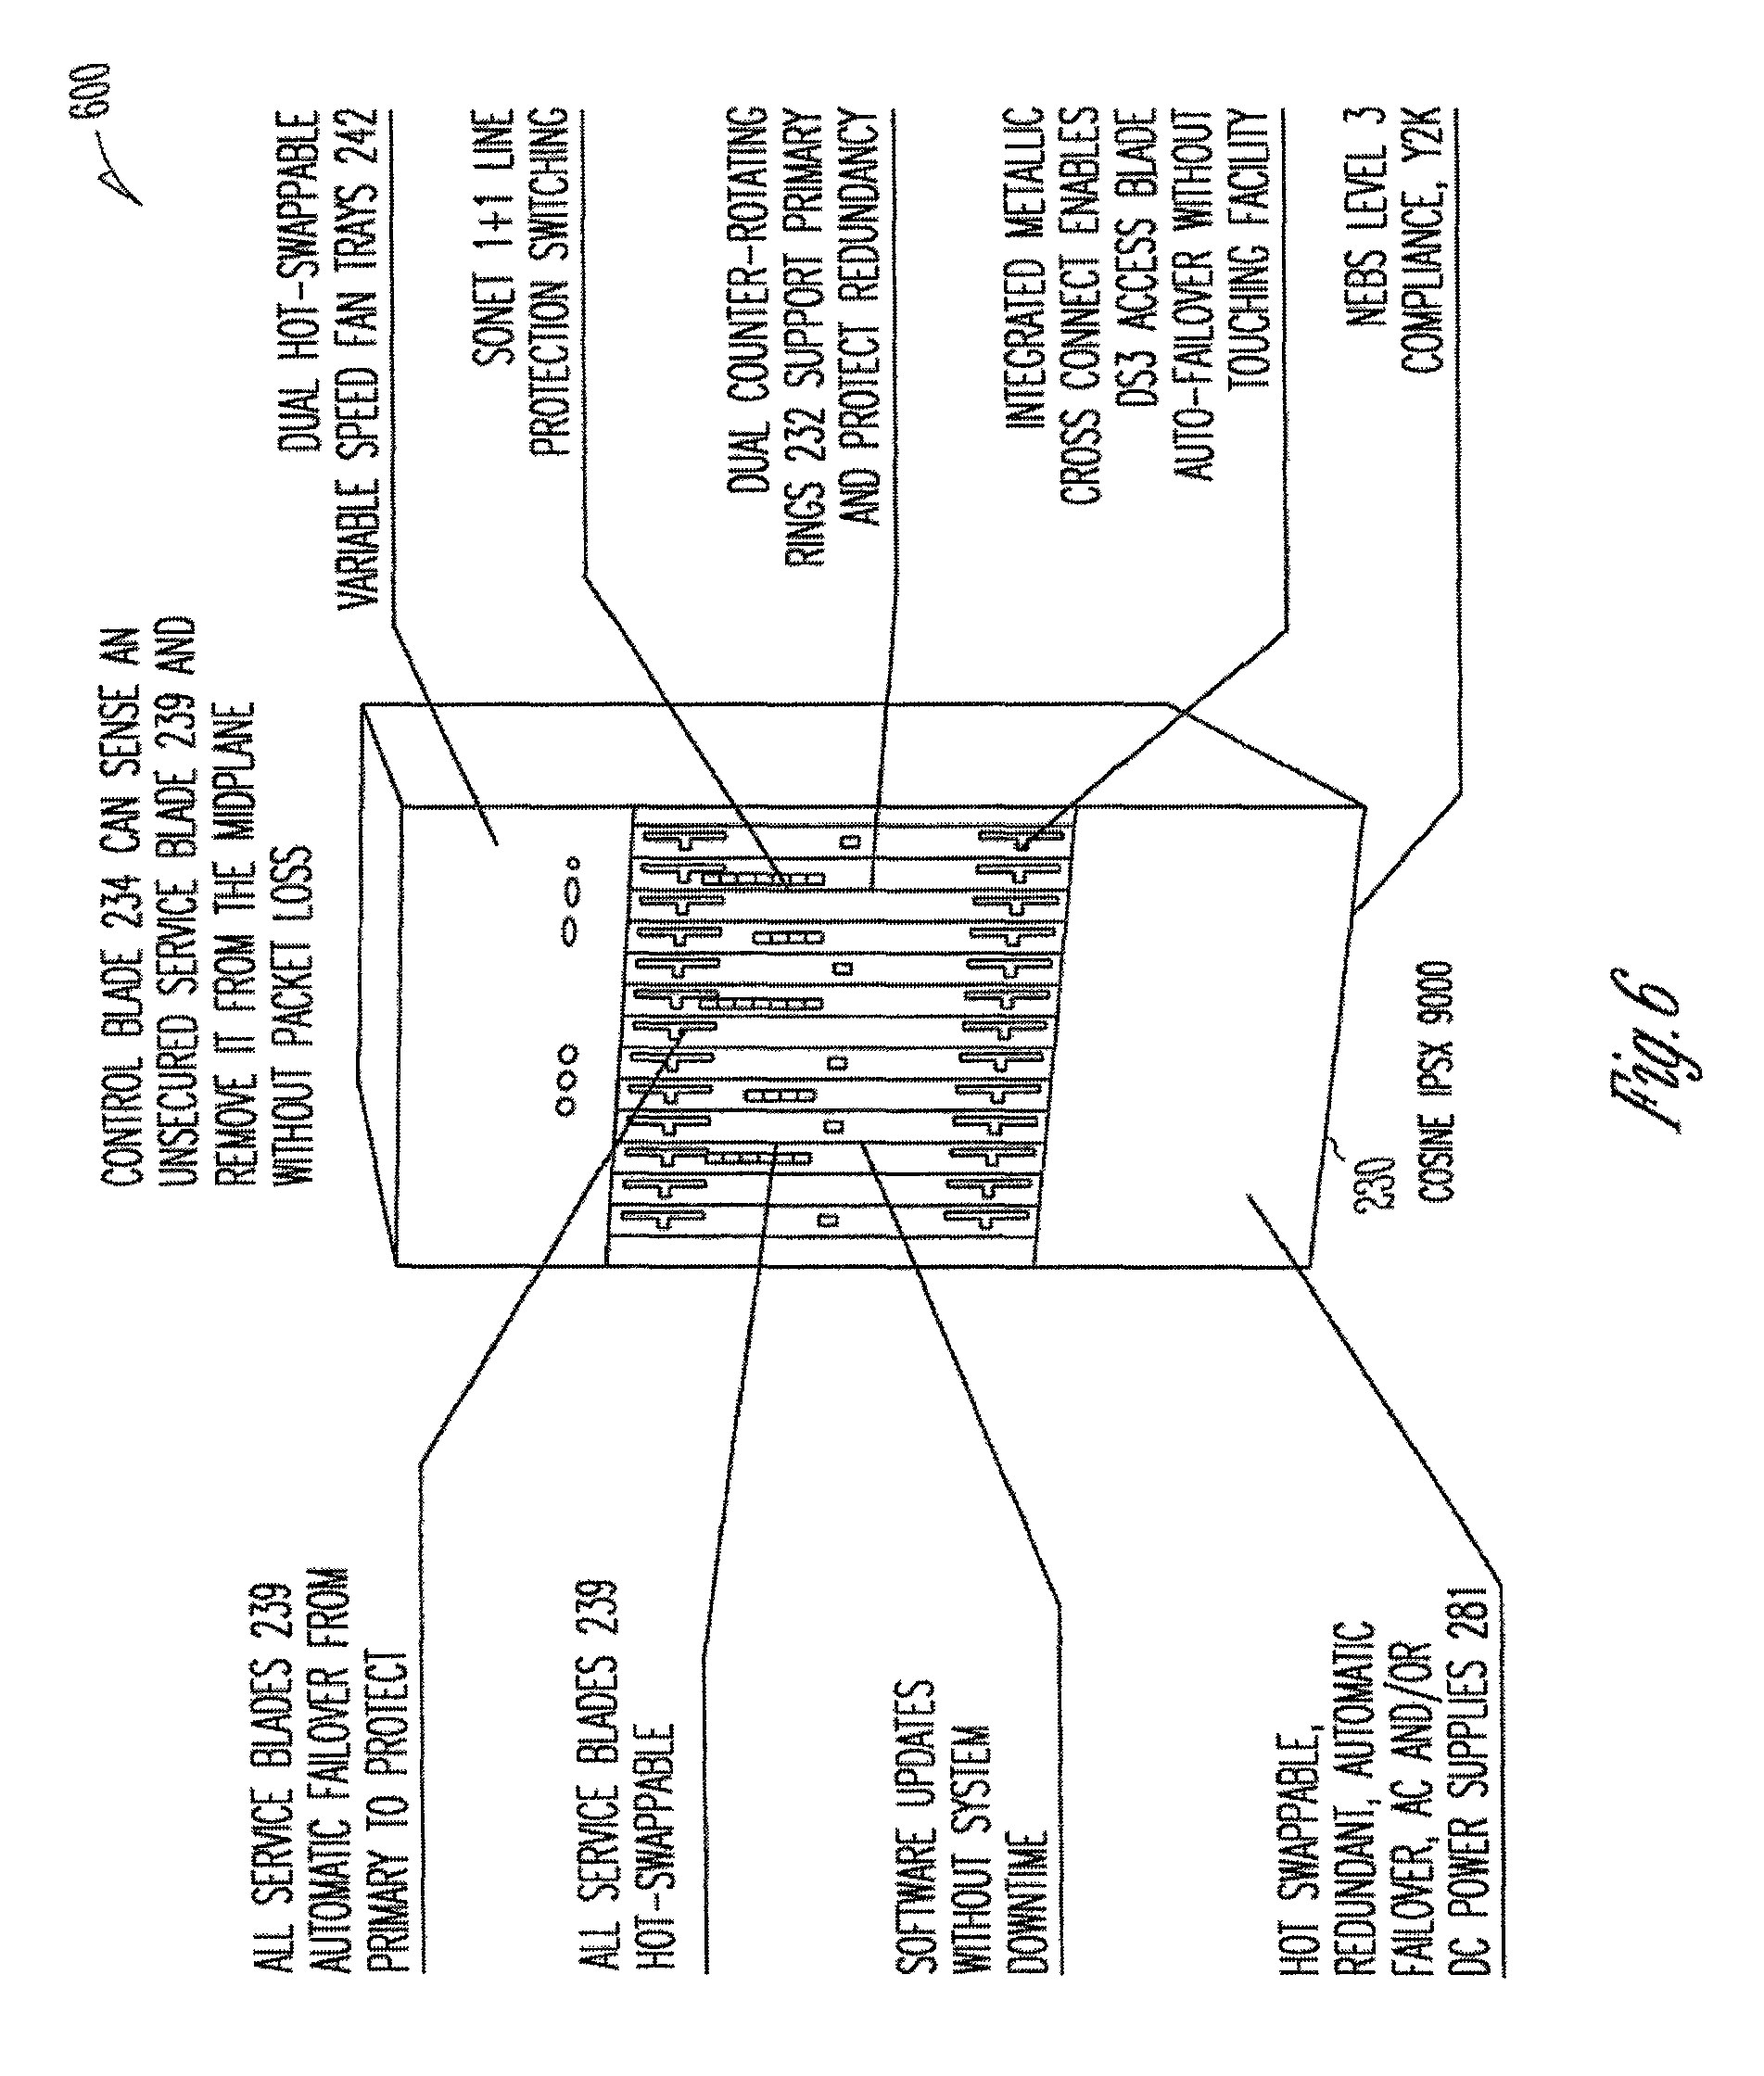 patent us  packet routing system and method  google patents, Beautiful flower